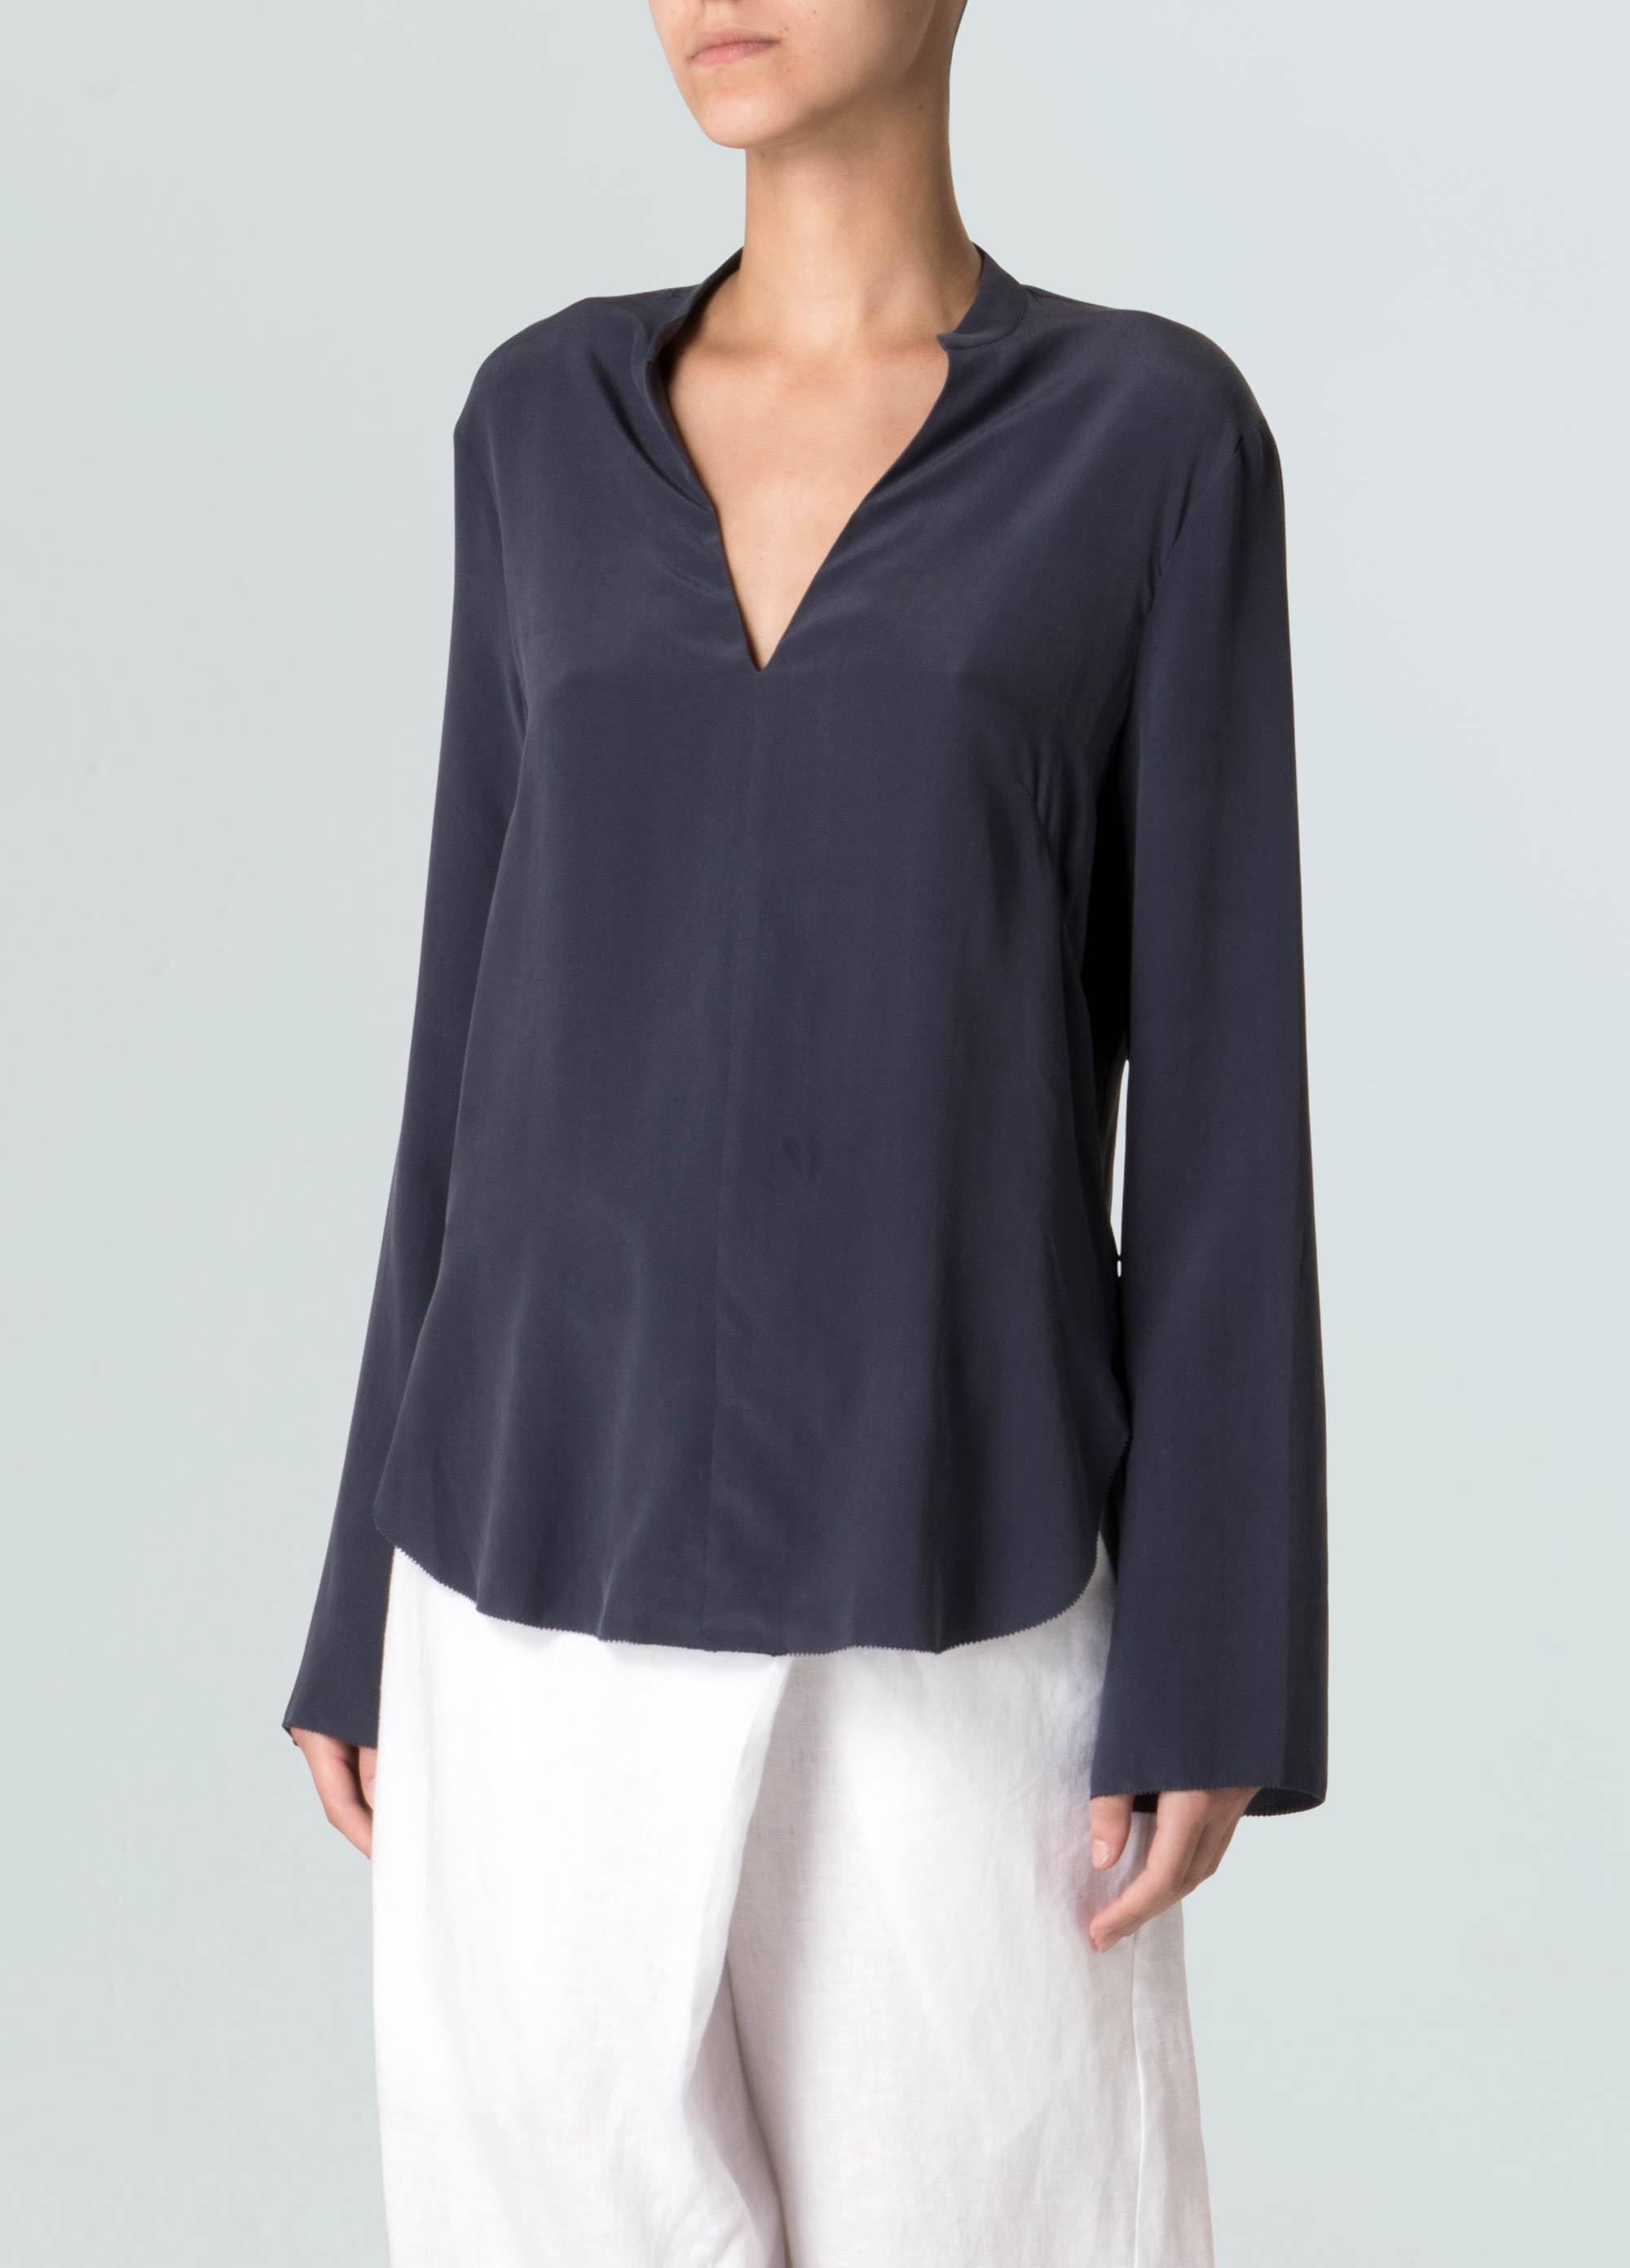 Women's Light Long Sleeve Blouse